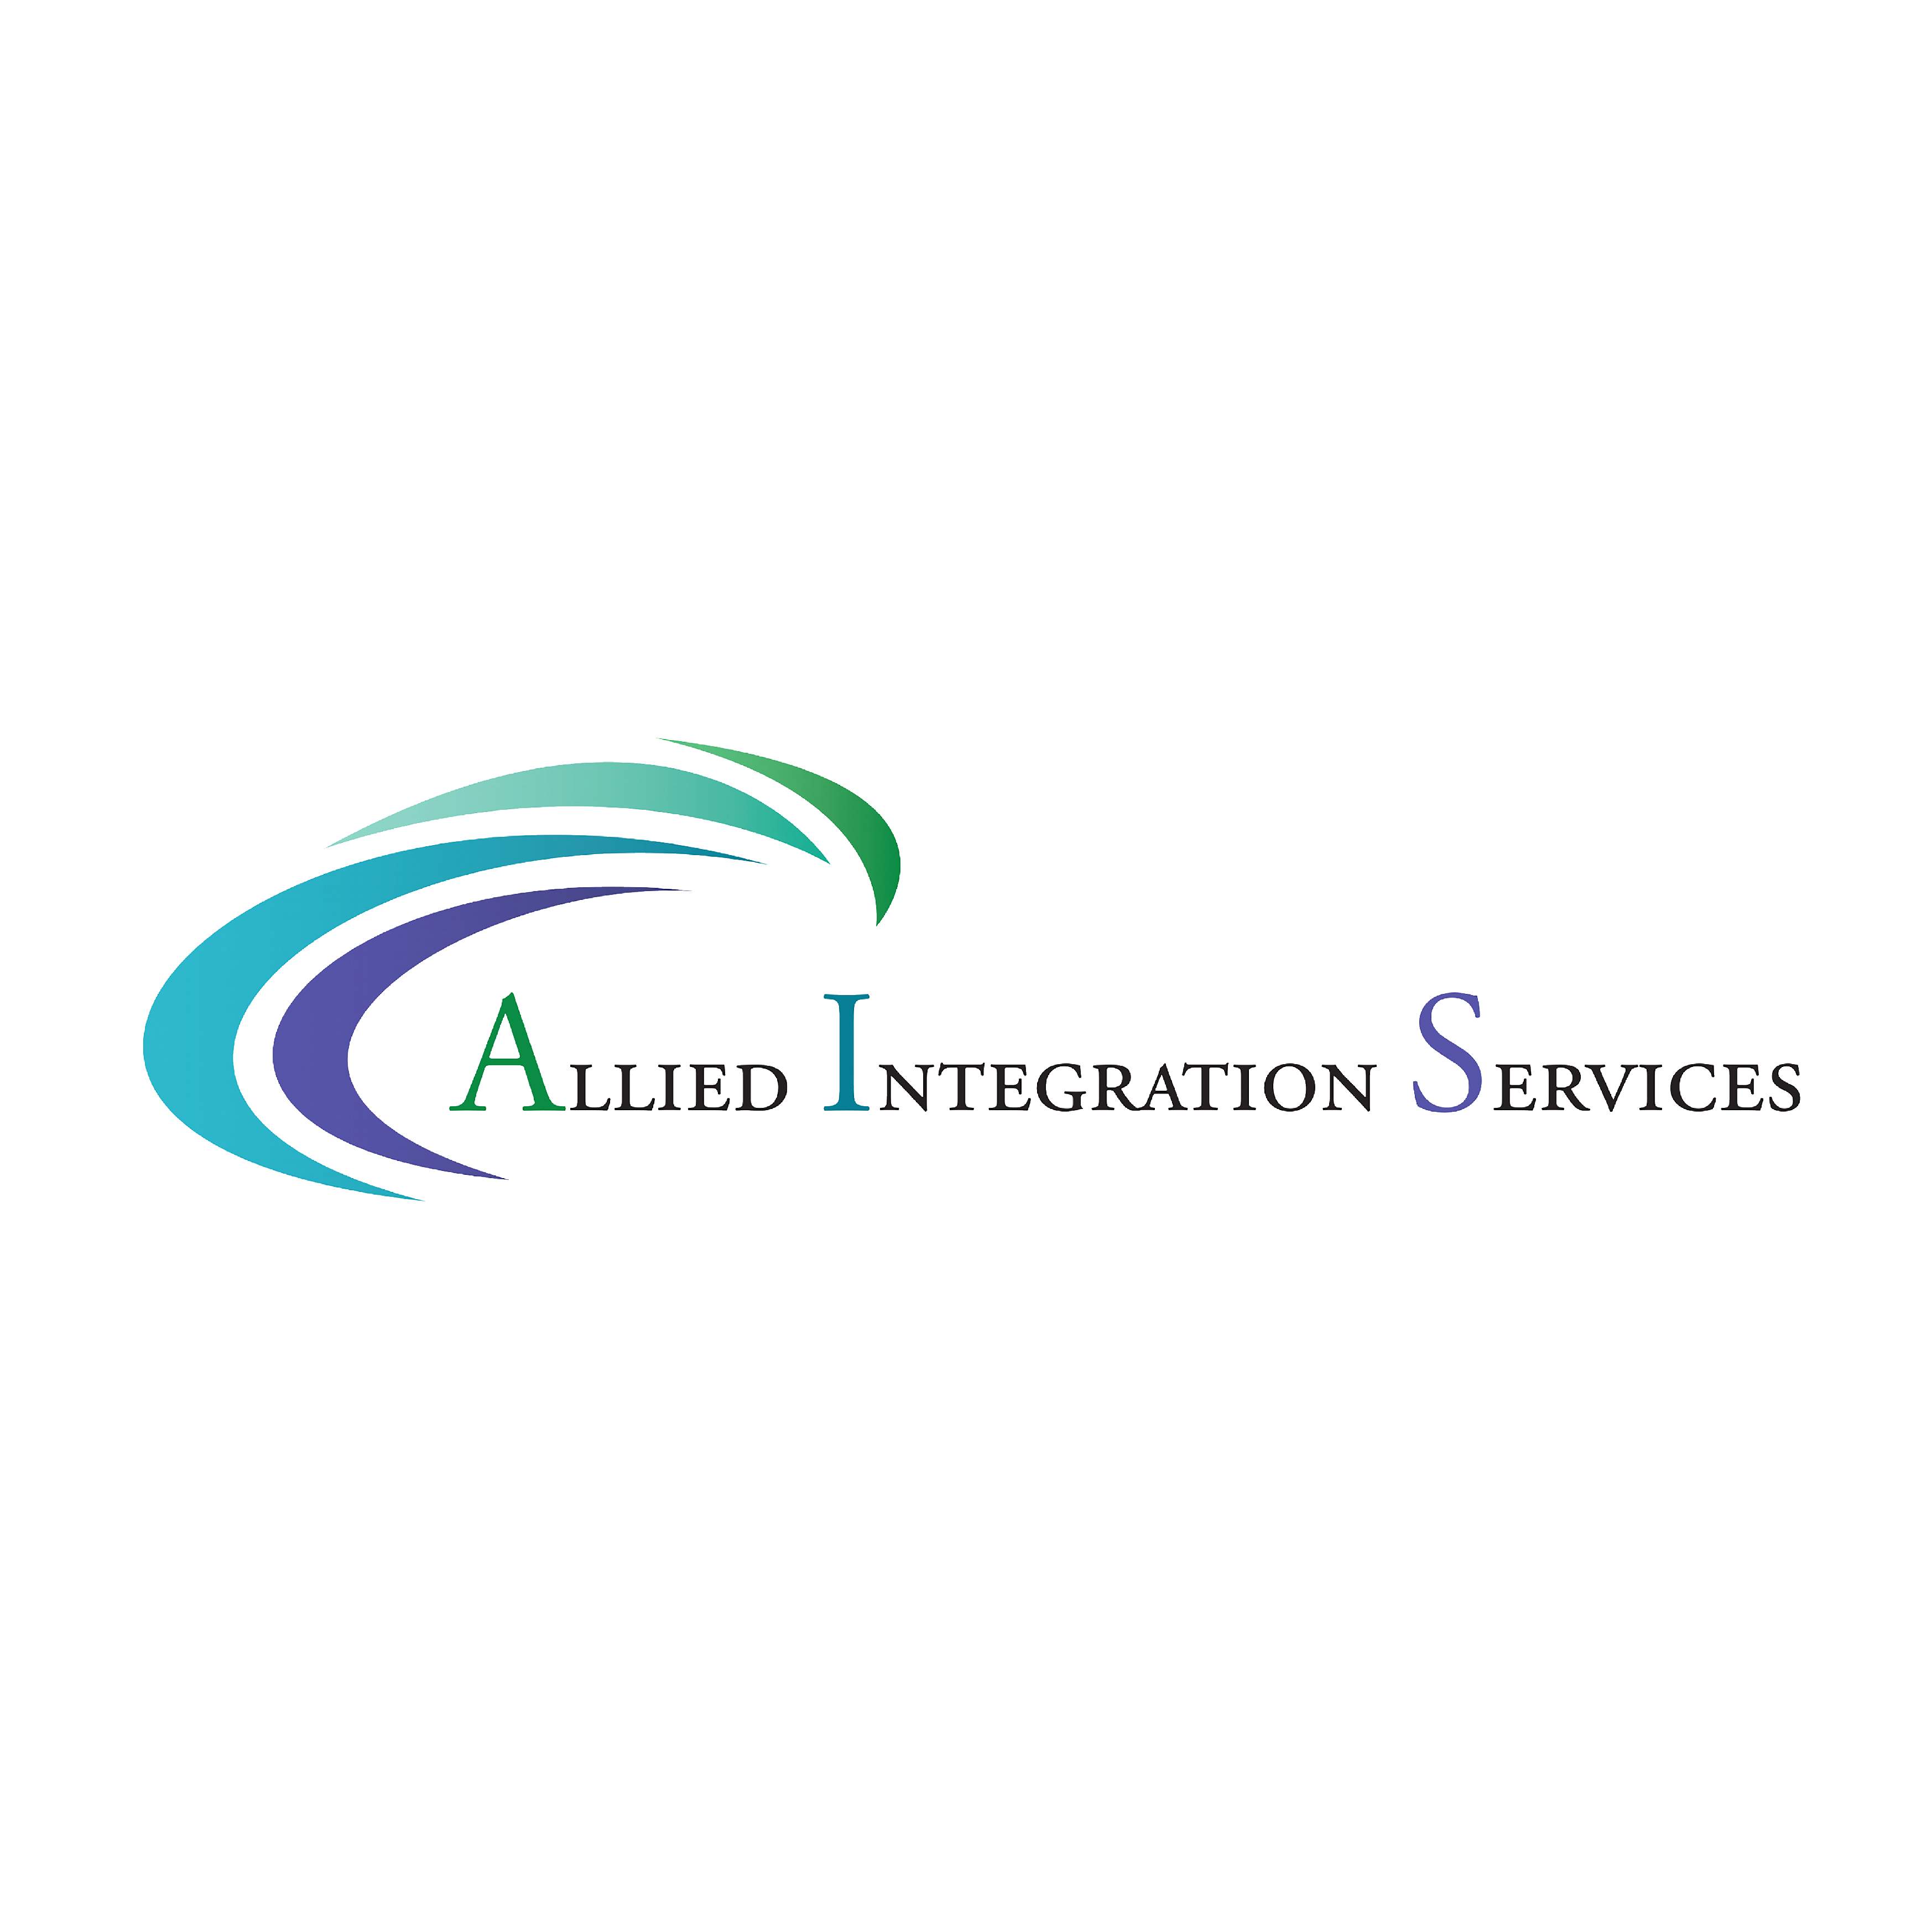 Allied Integration Services